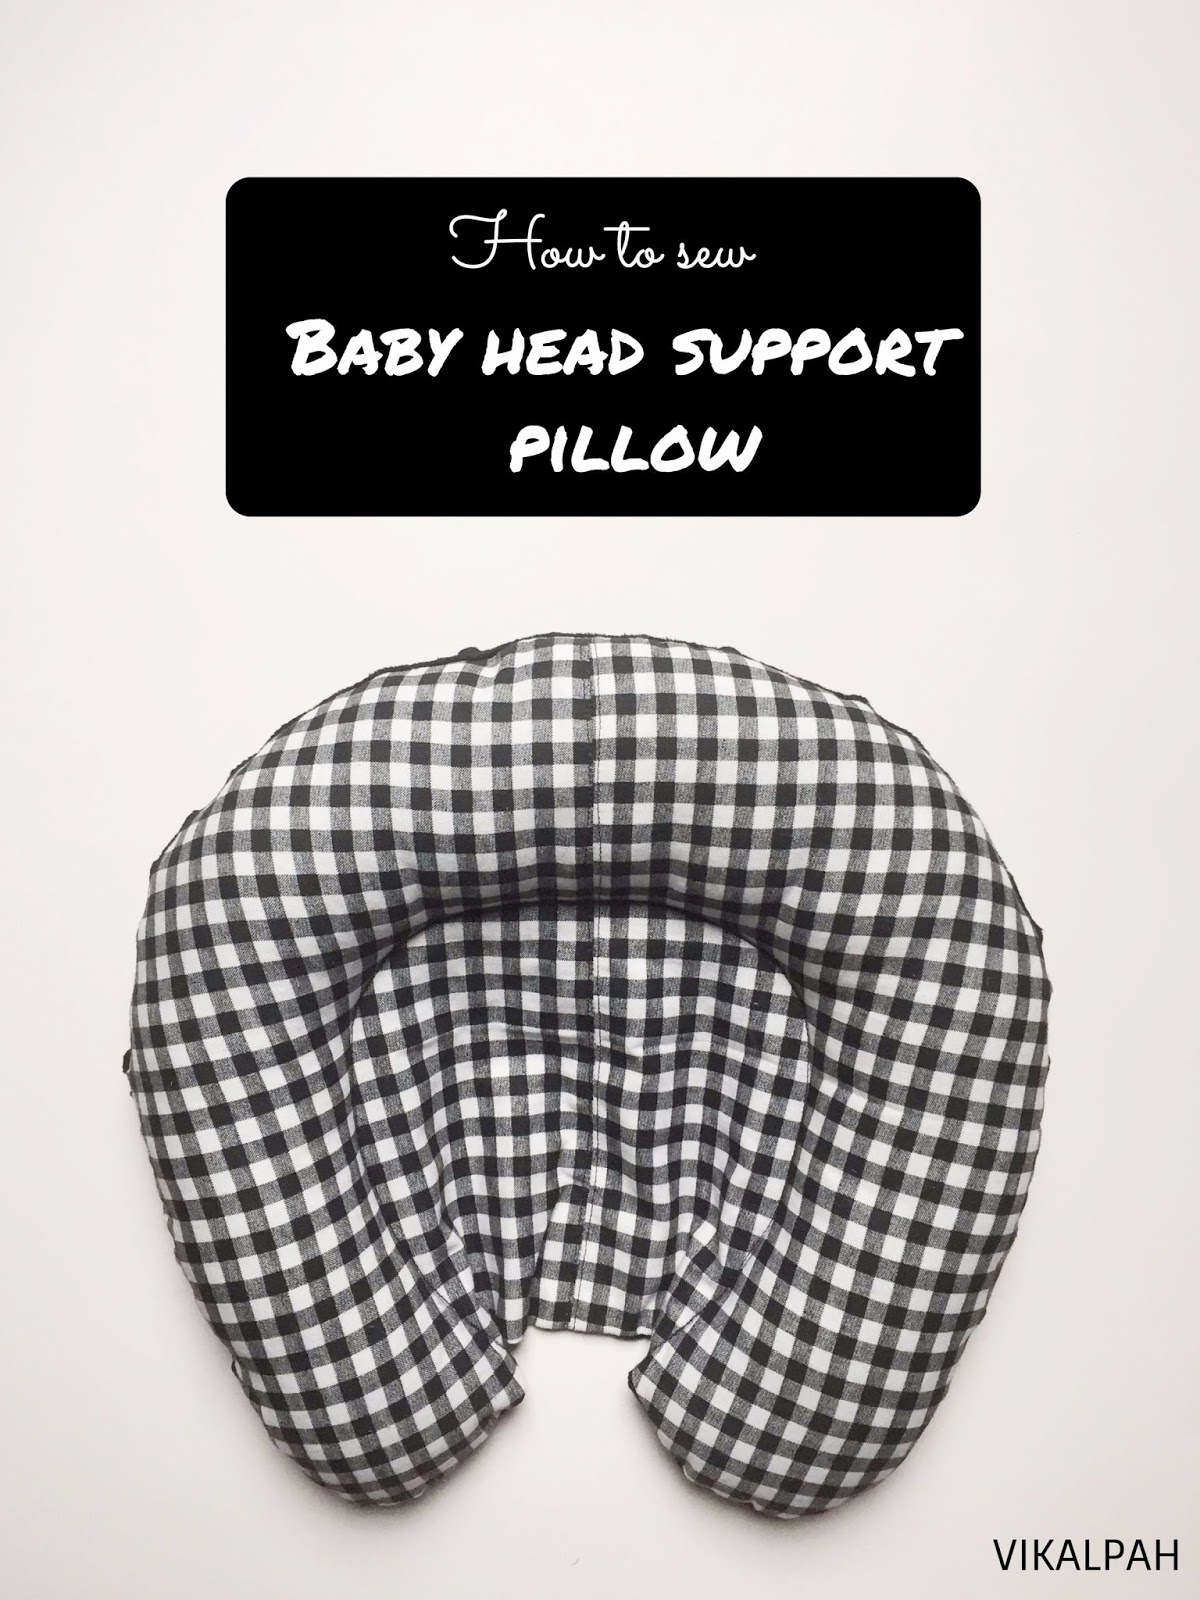 Vikalpah How To Sew Baby Head Support Pillow